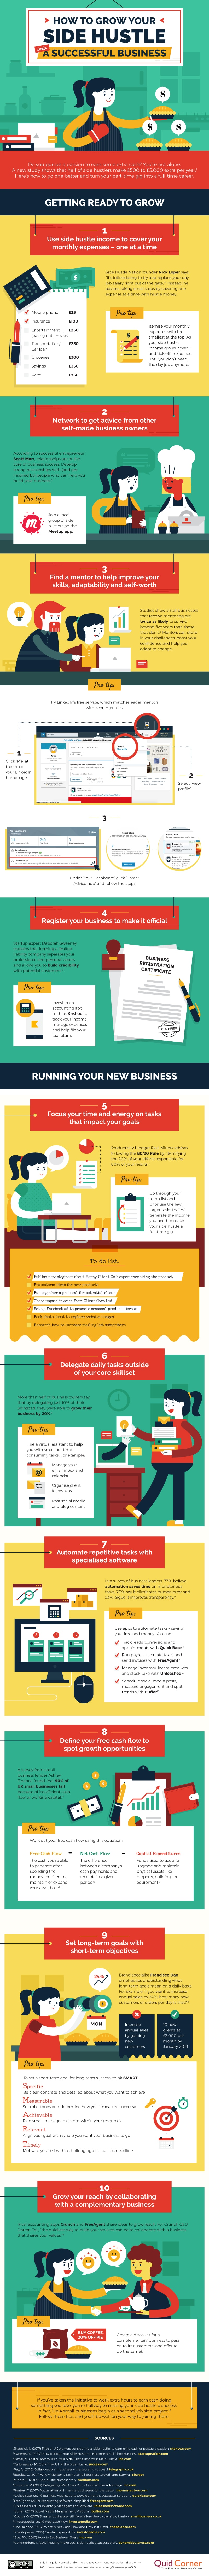 How To Turn Your Side Gig Into A Dream Job [Infographic]